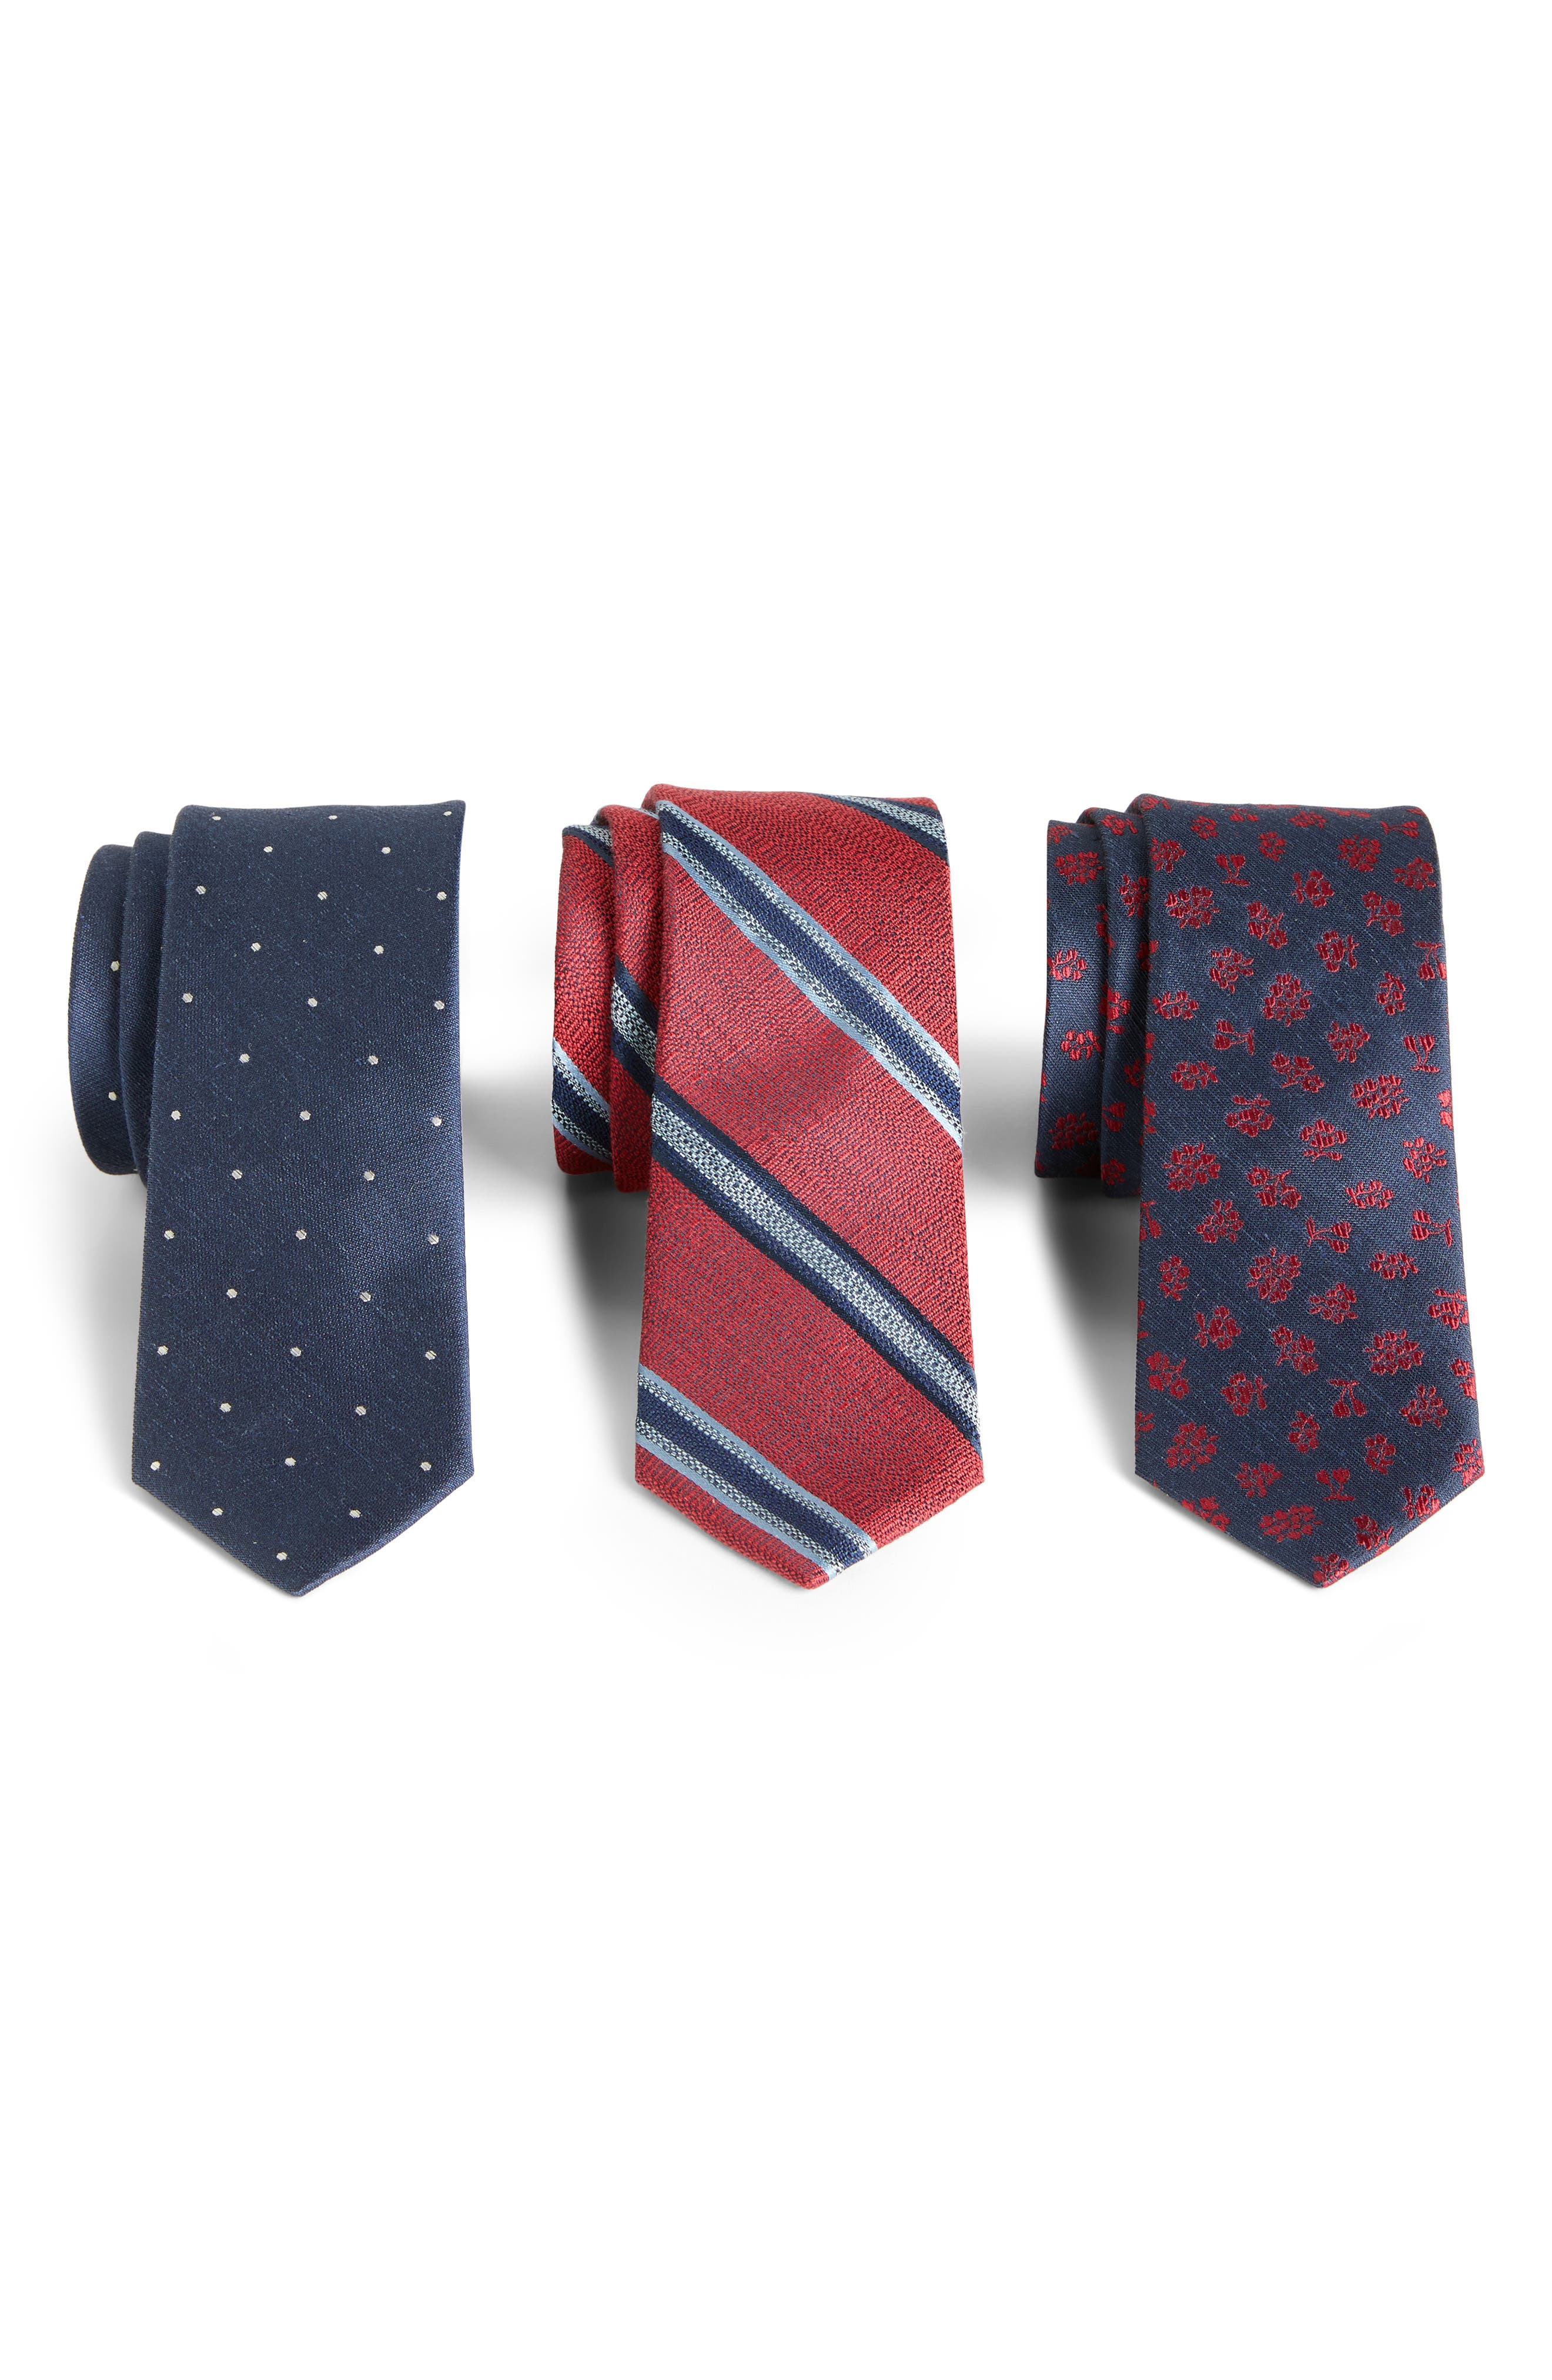 THE TIE BAR 3-Pack Red Tie Gift Set, Main, color, RED